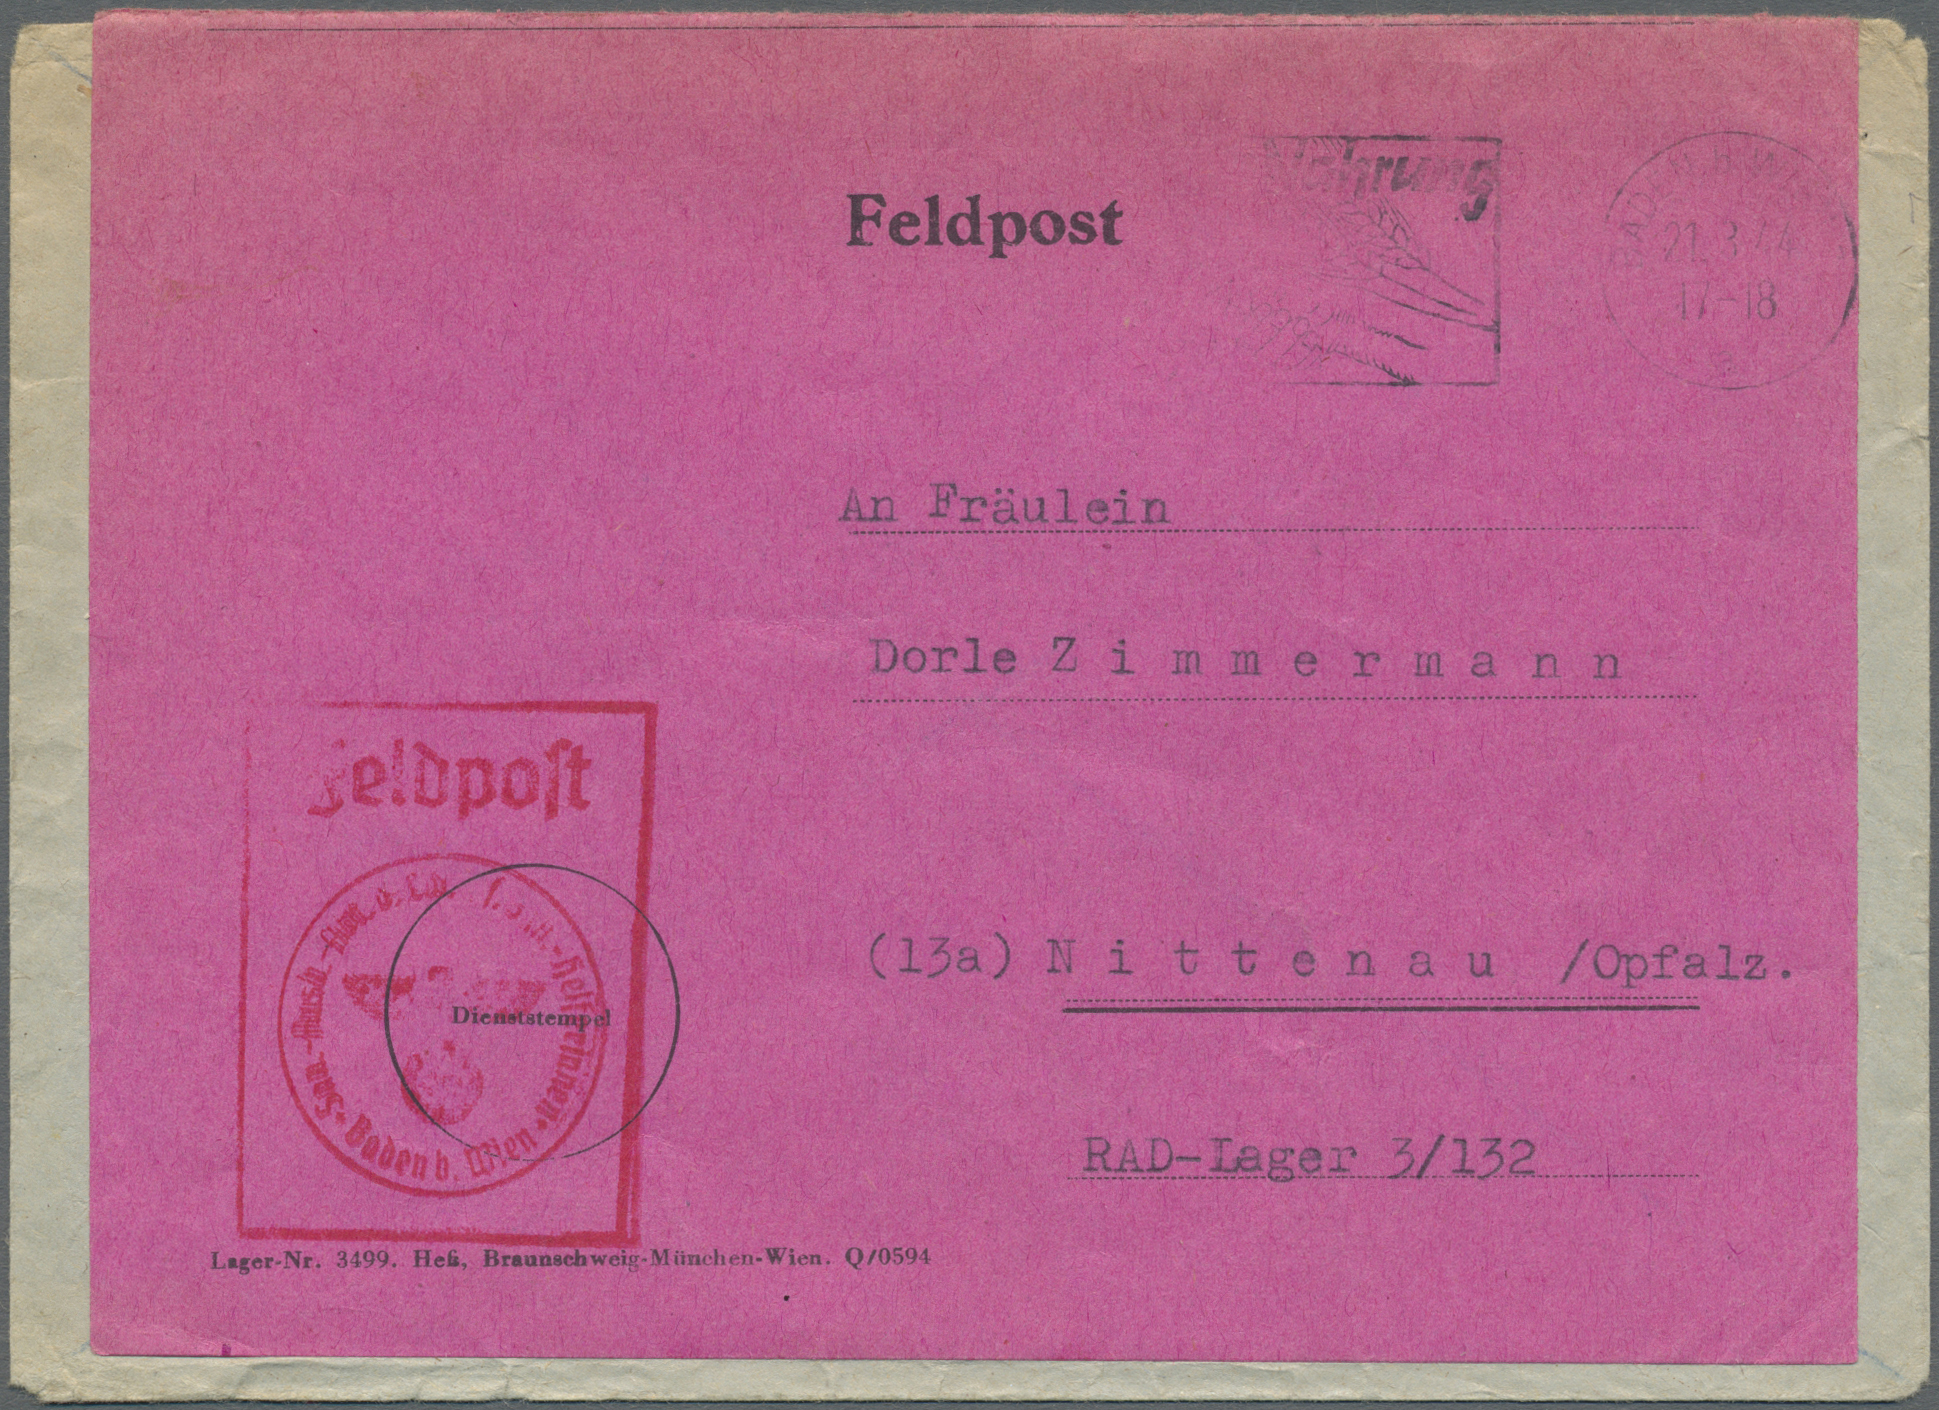 Lot 37579 - feldpost 2. weltkrieg  -  Auktionshaus Christoph Gärtner GmbH & Co. KG Collections Germany,  Collections Supplement, Surprise boxes #39 Day 7